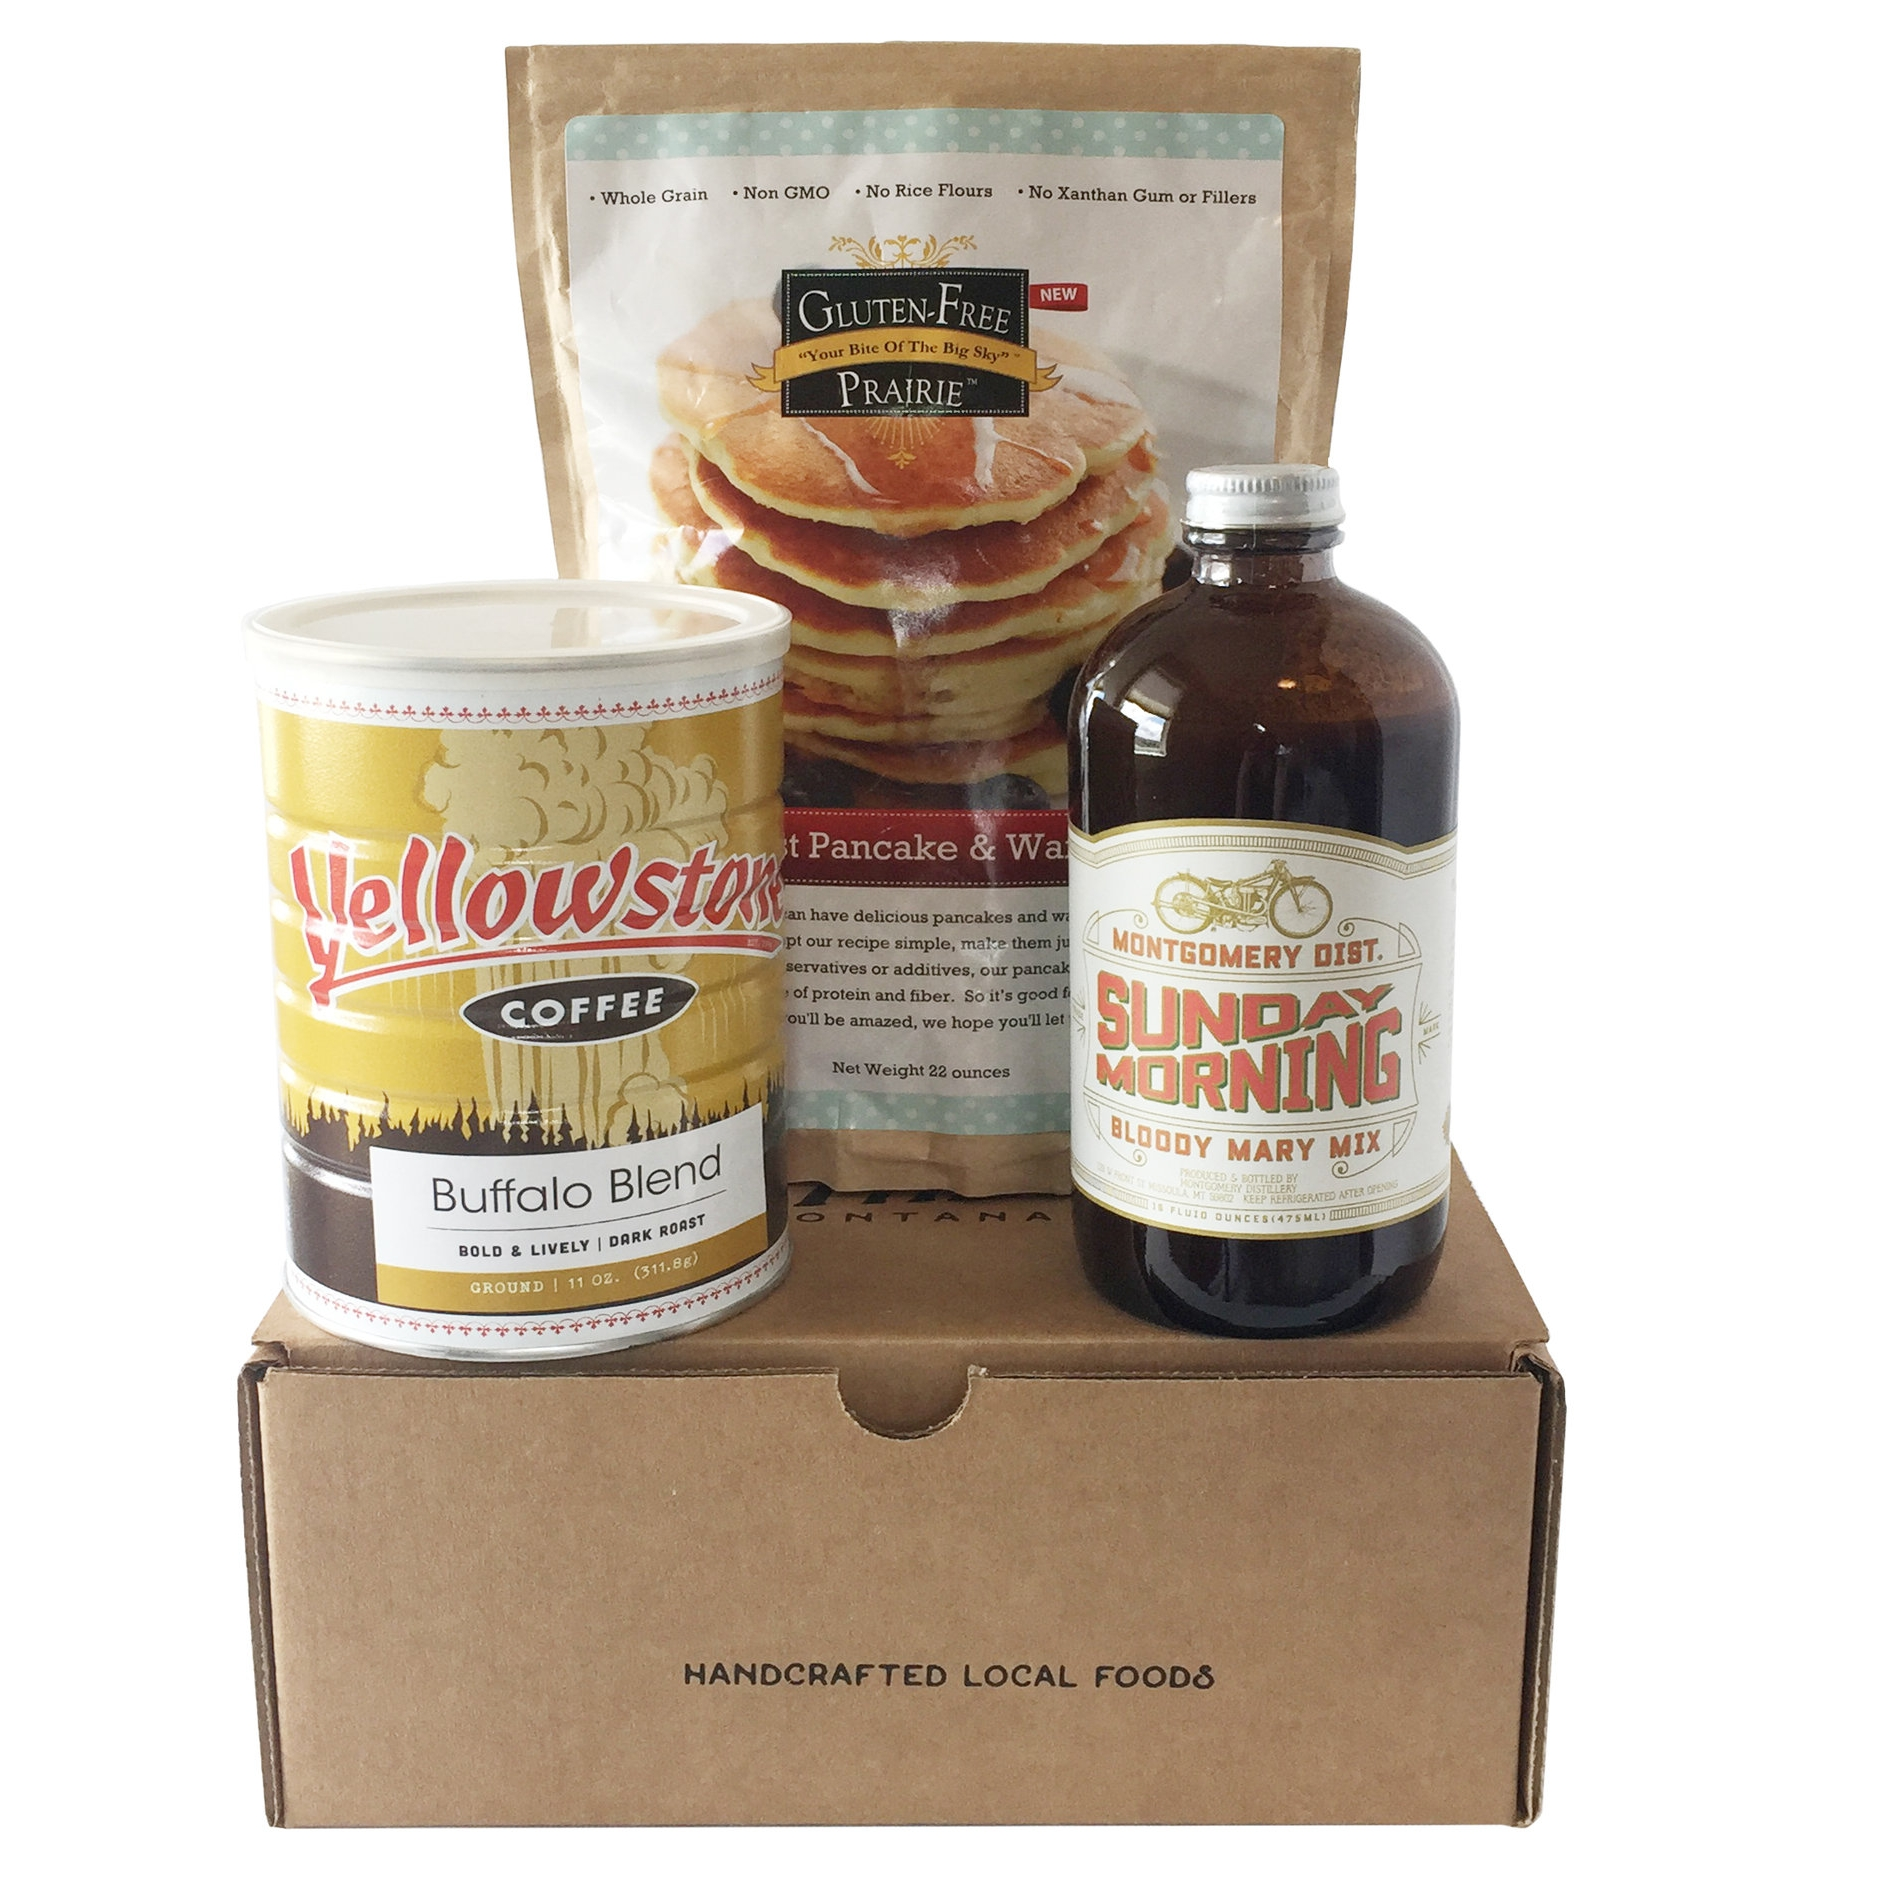 The Montana Brunch in a Box features Yellowstone Coffee Roasters coffee, Montgomery Distillery Bloody Mary Mix, and Gluten Free Prairie Pancake and Waffle Mix.